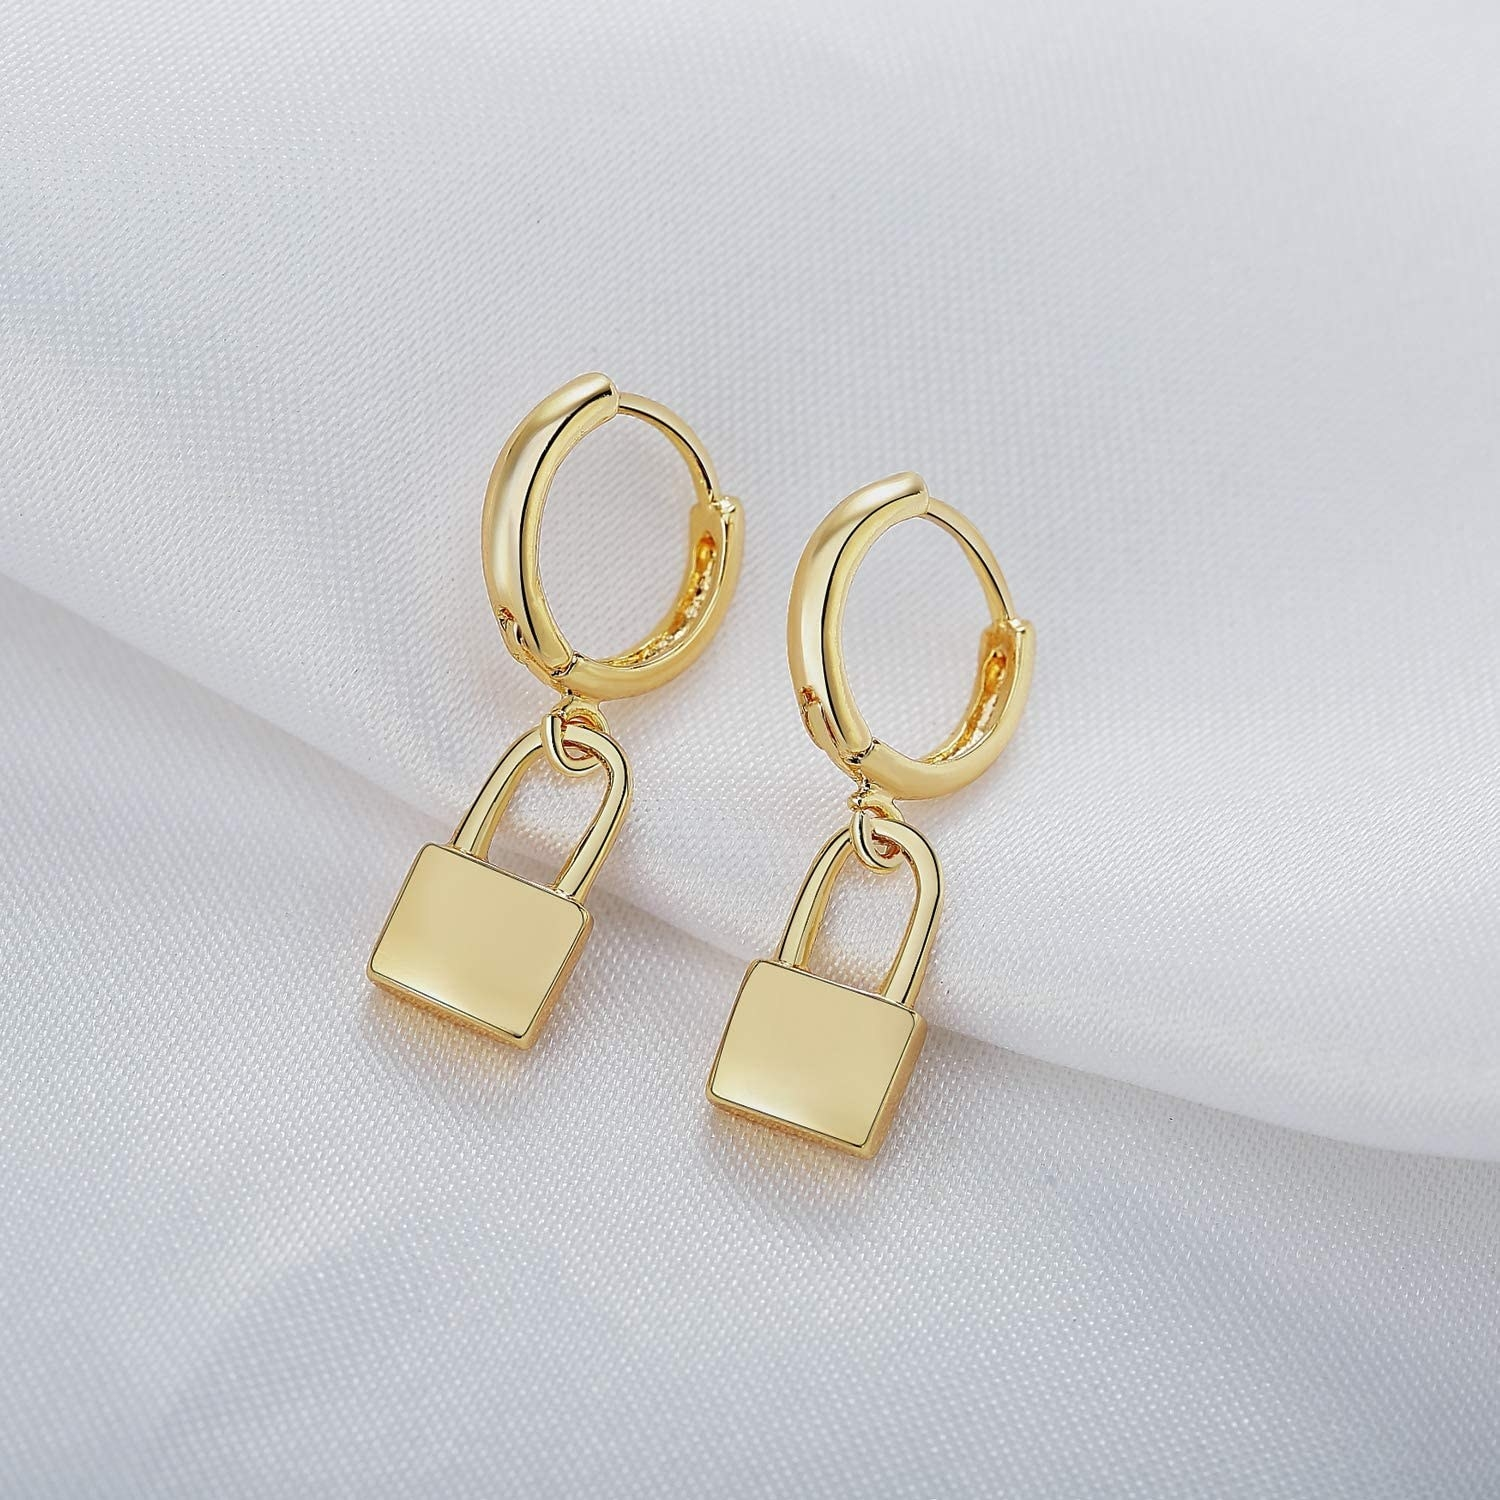 Small gold hoops with little padlocks hanging from them